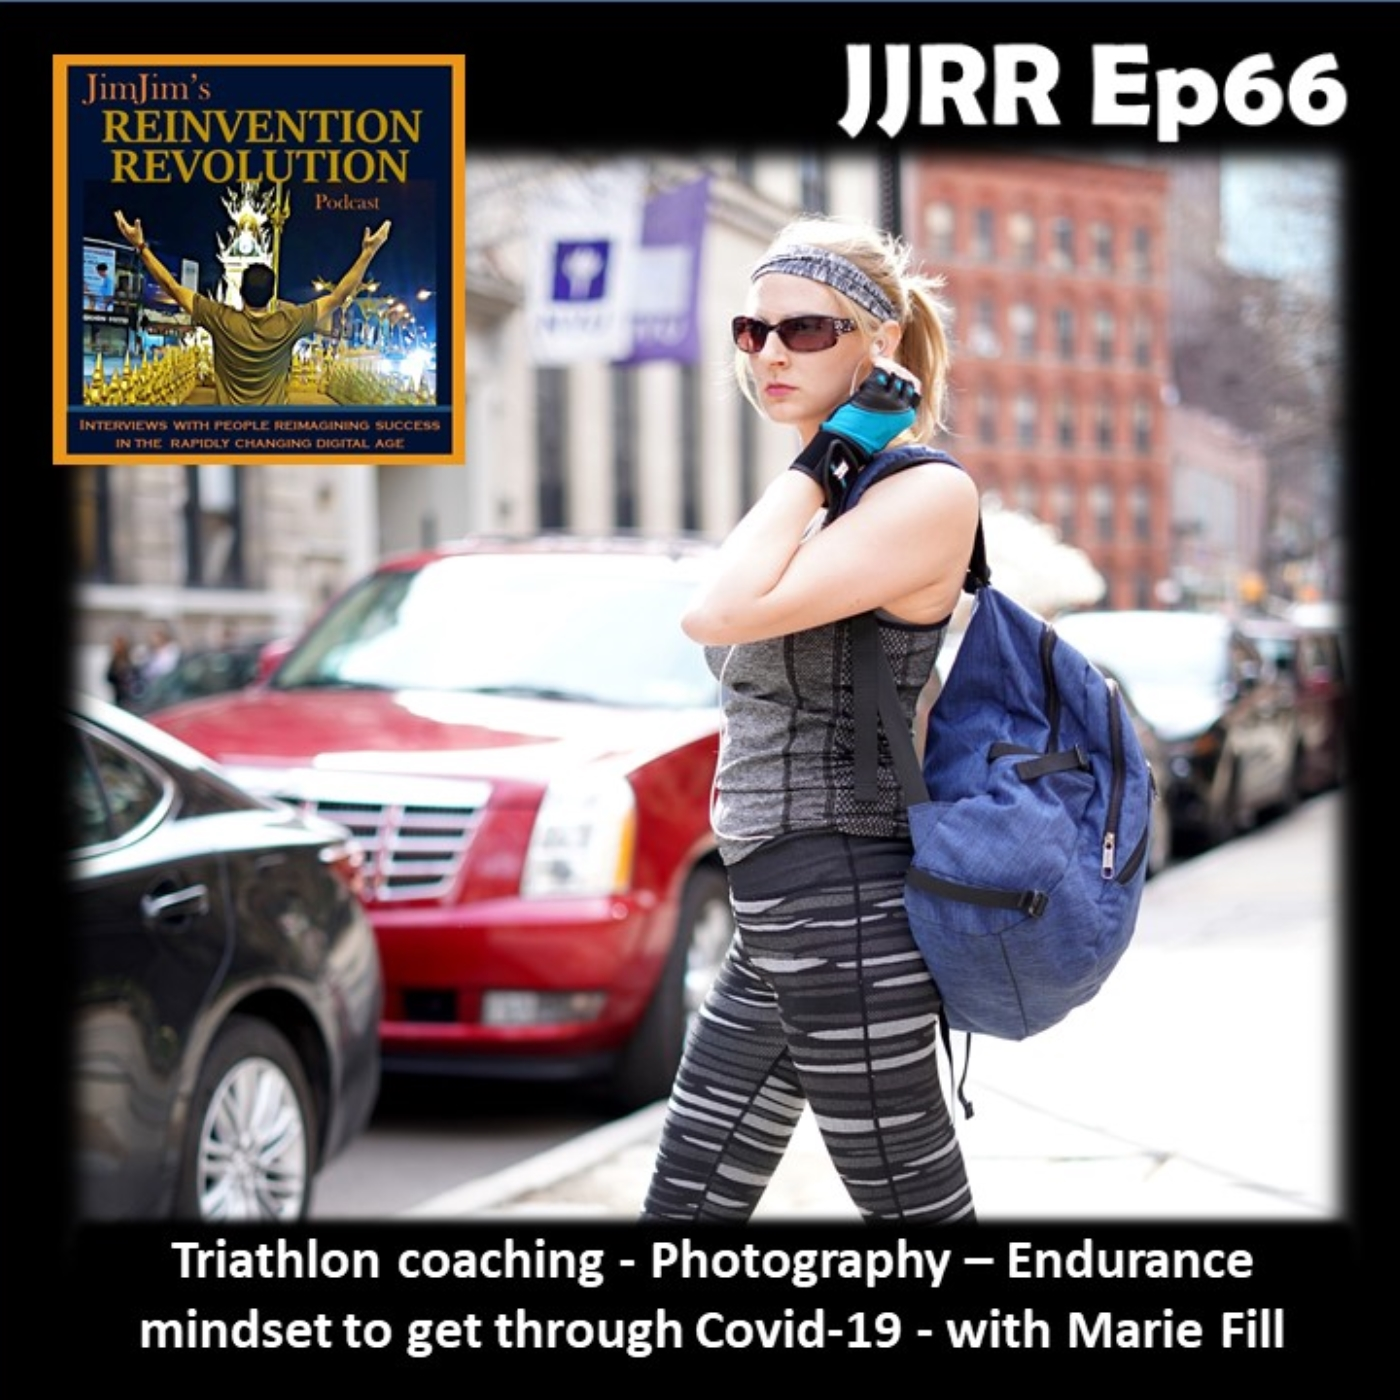 JJRR 66 Triathlon coaching – Photography – Endurance mindset to get through Covid-19 – with Marie Fill